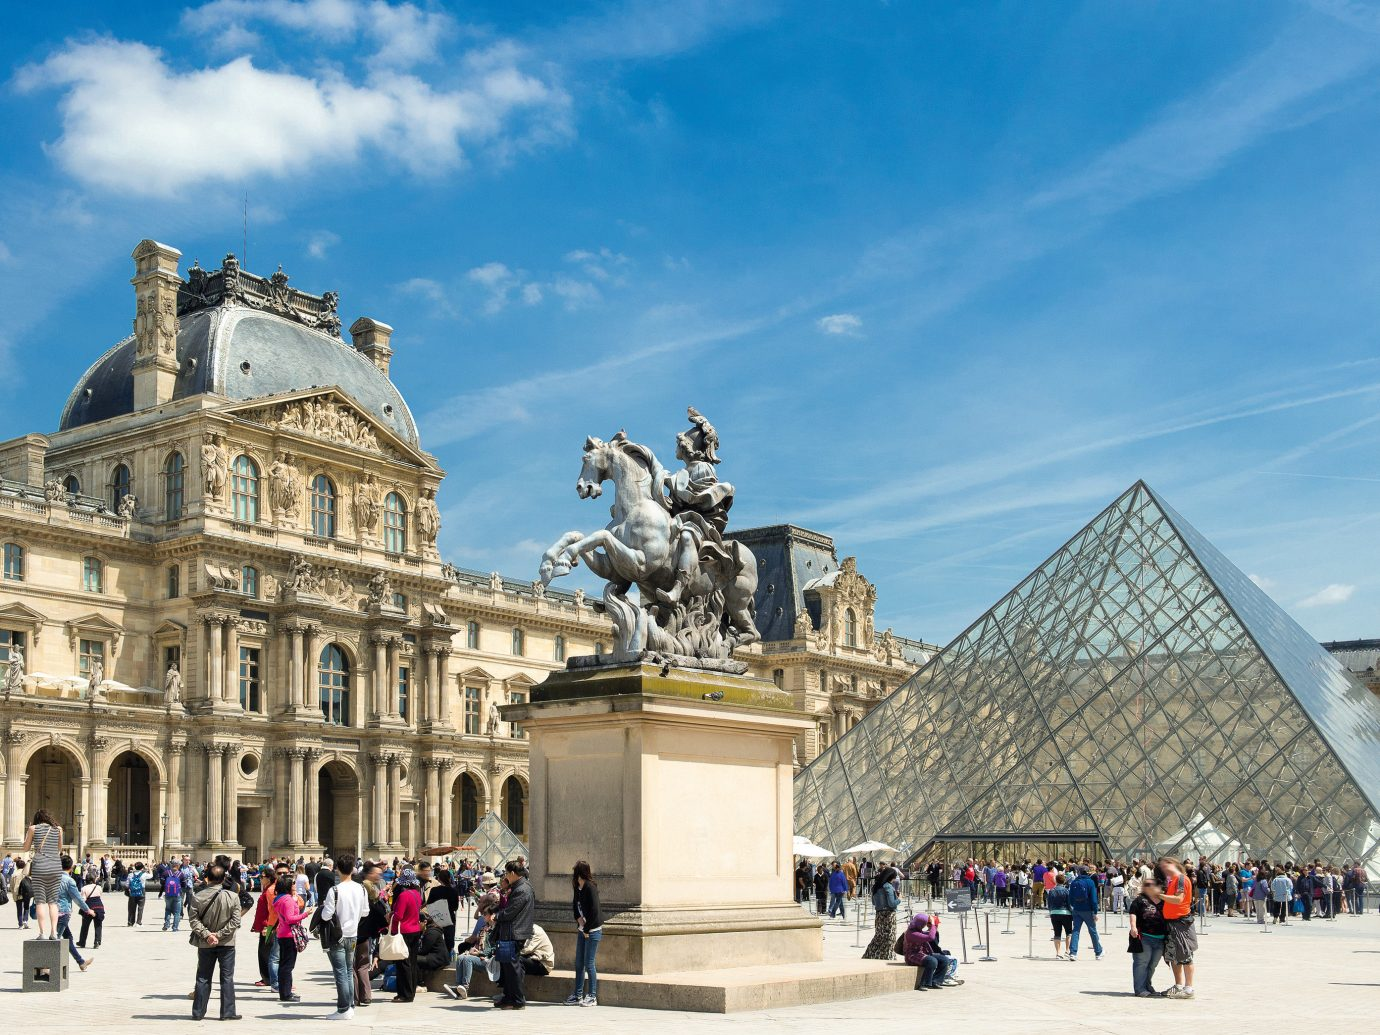 Trip Ideas sky outdoor people landmark structure town square plaza building Architecture monument tourism group facade cityscape palace square stone crowd